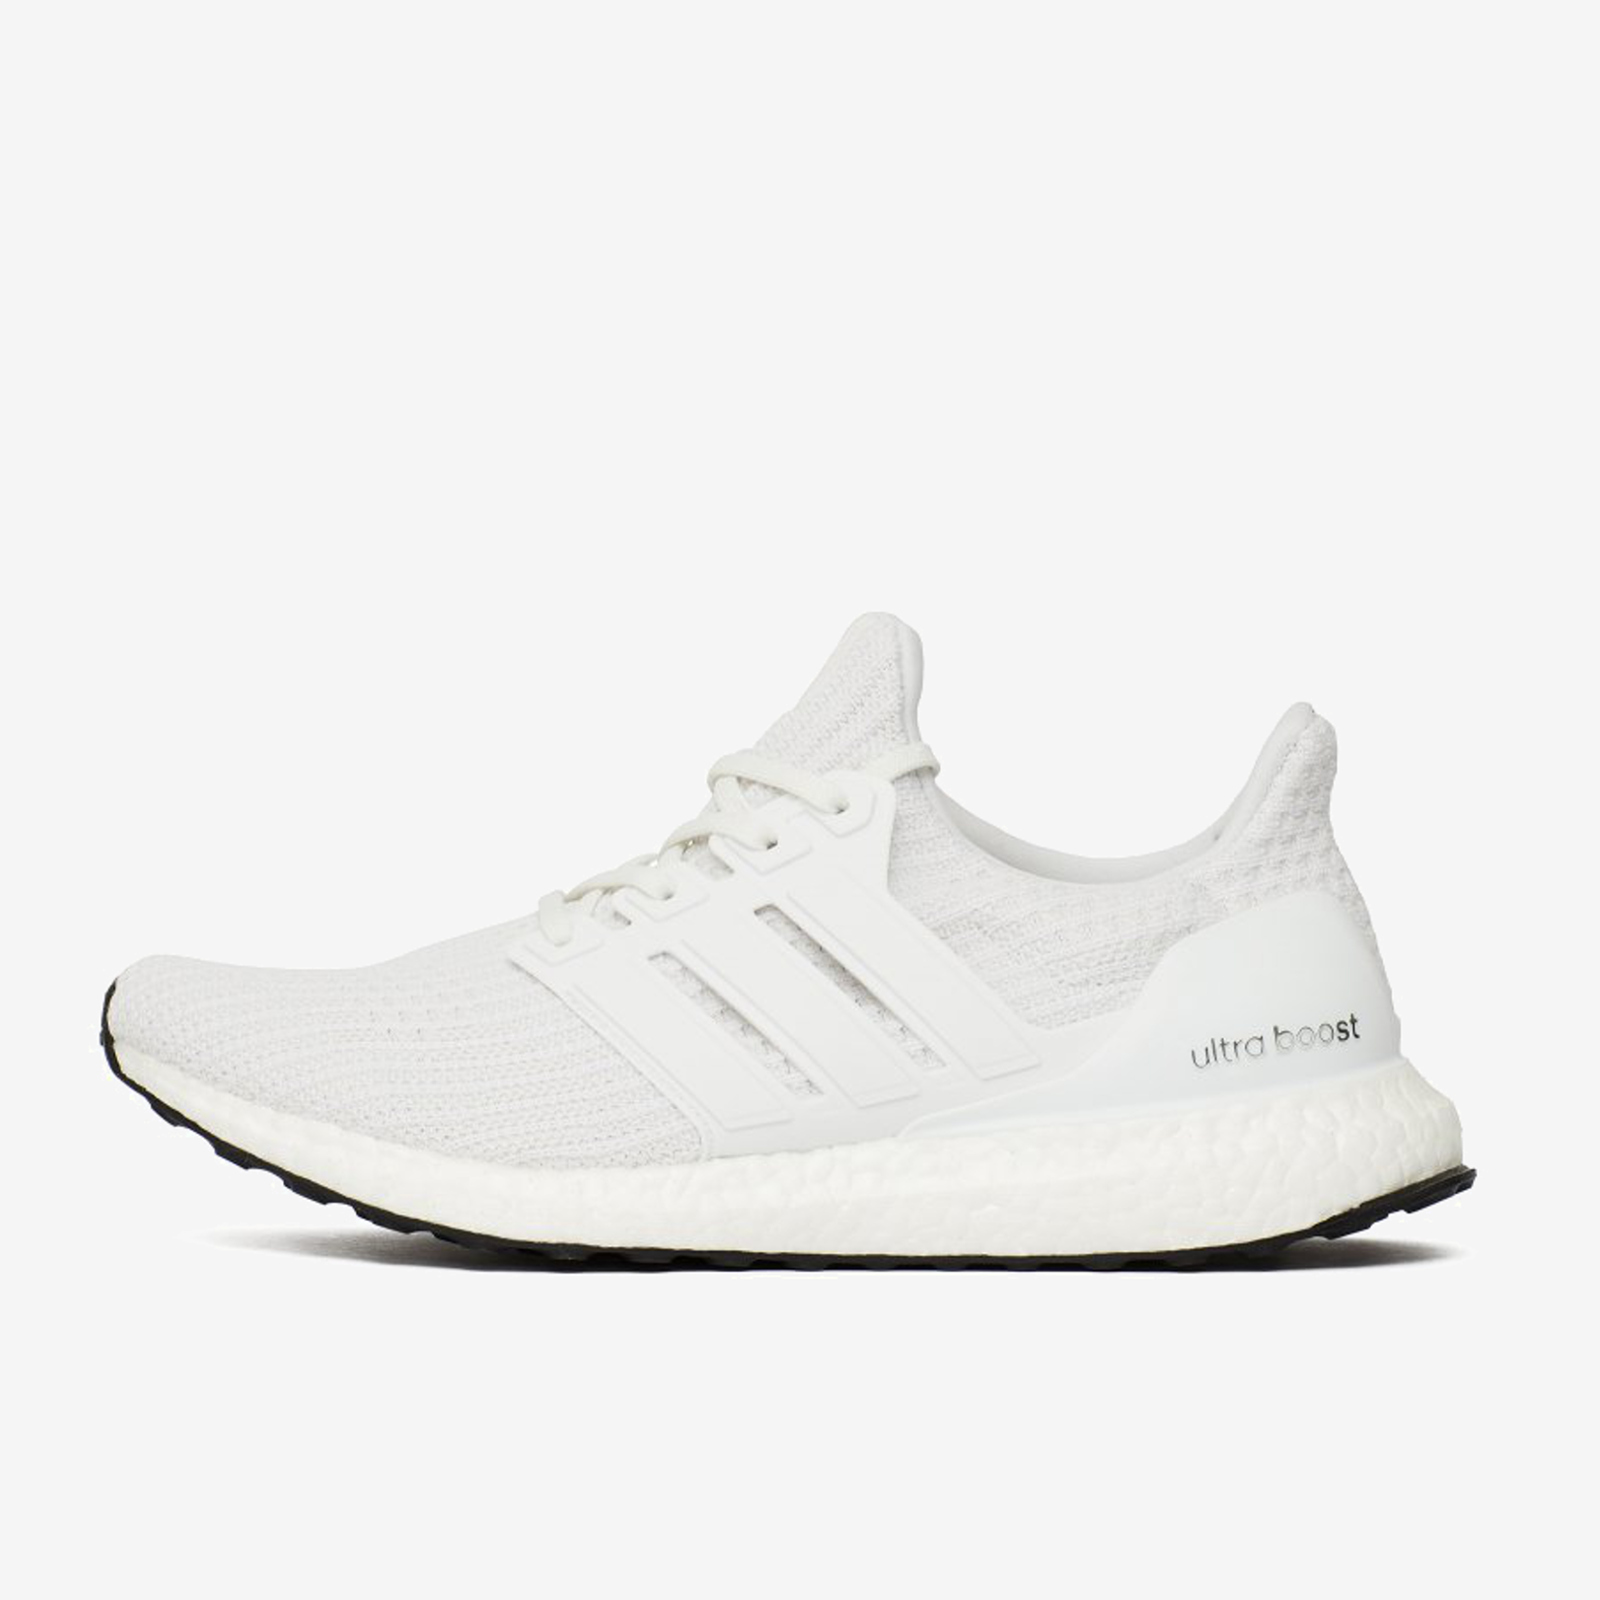 378e4d12cb63a3 ADIDAS ULTRABOOST 4.0. STYLE  BB6168 COLOR  WHITE CORE BLACK. All our items  are guaranteed 100% authentic